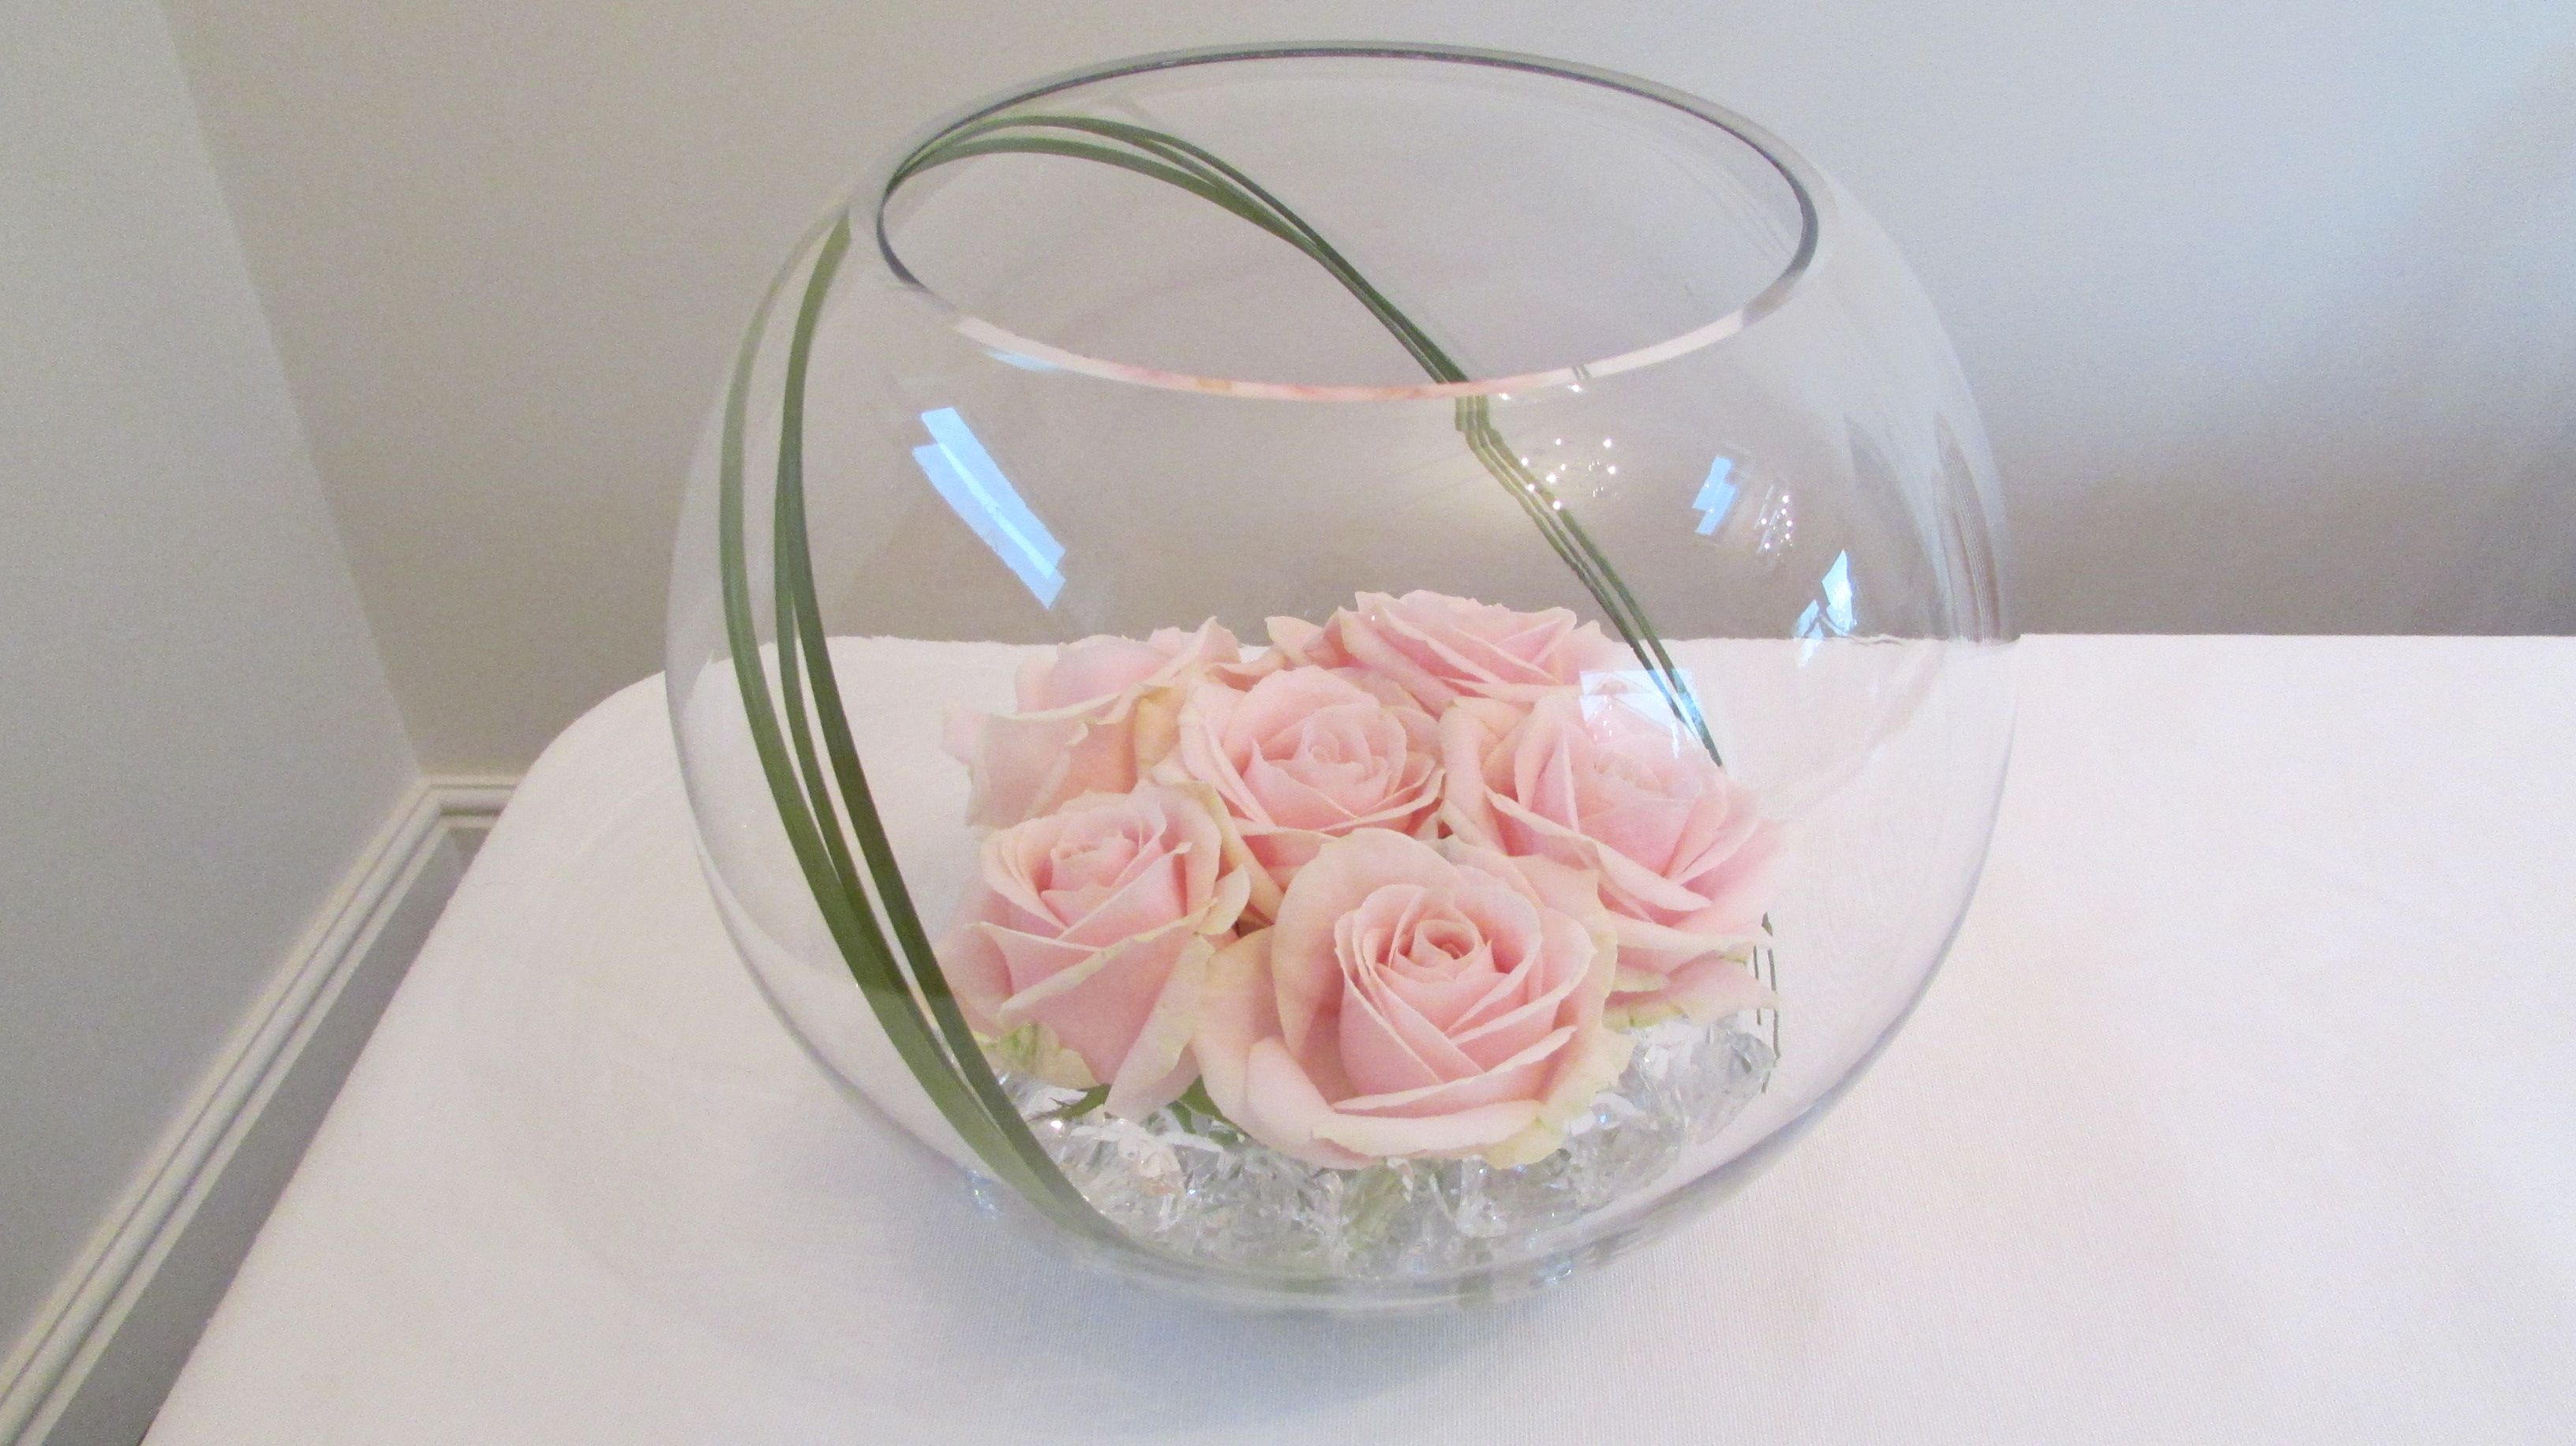 Large goldfish bowl with pink sweet avalanche roses ideal wedding table decoration, centrepiece